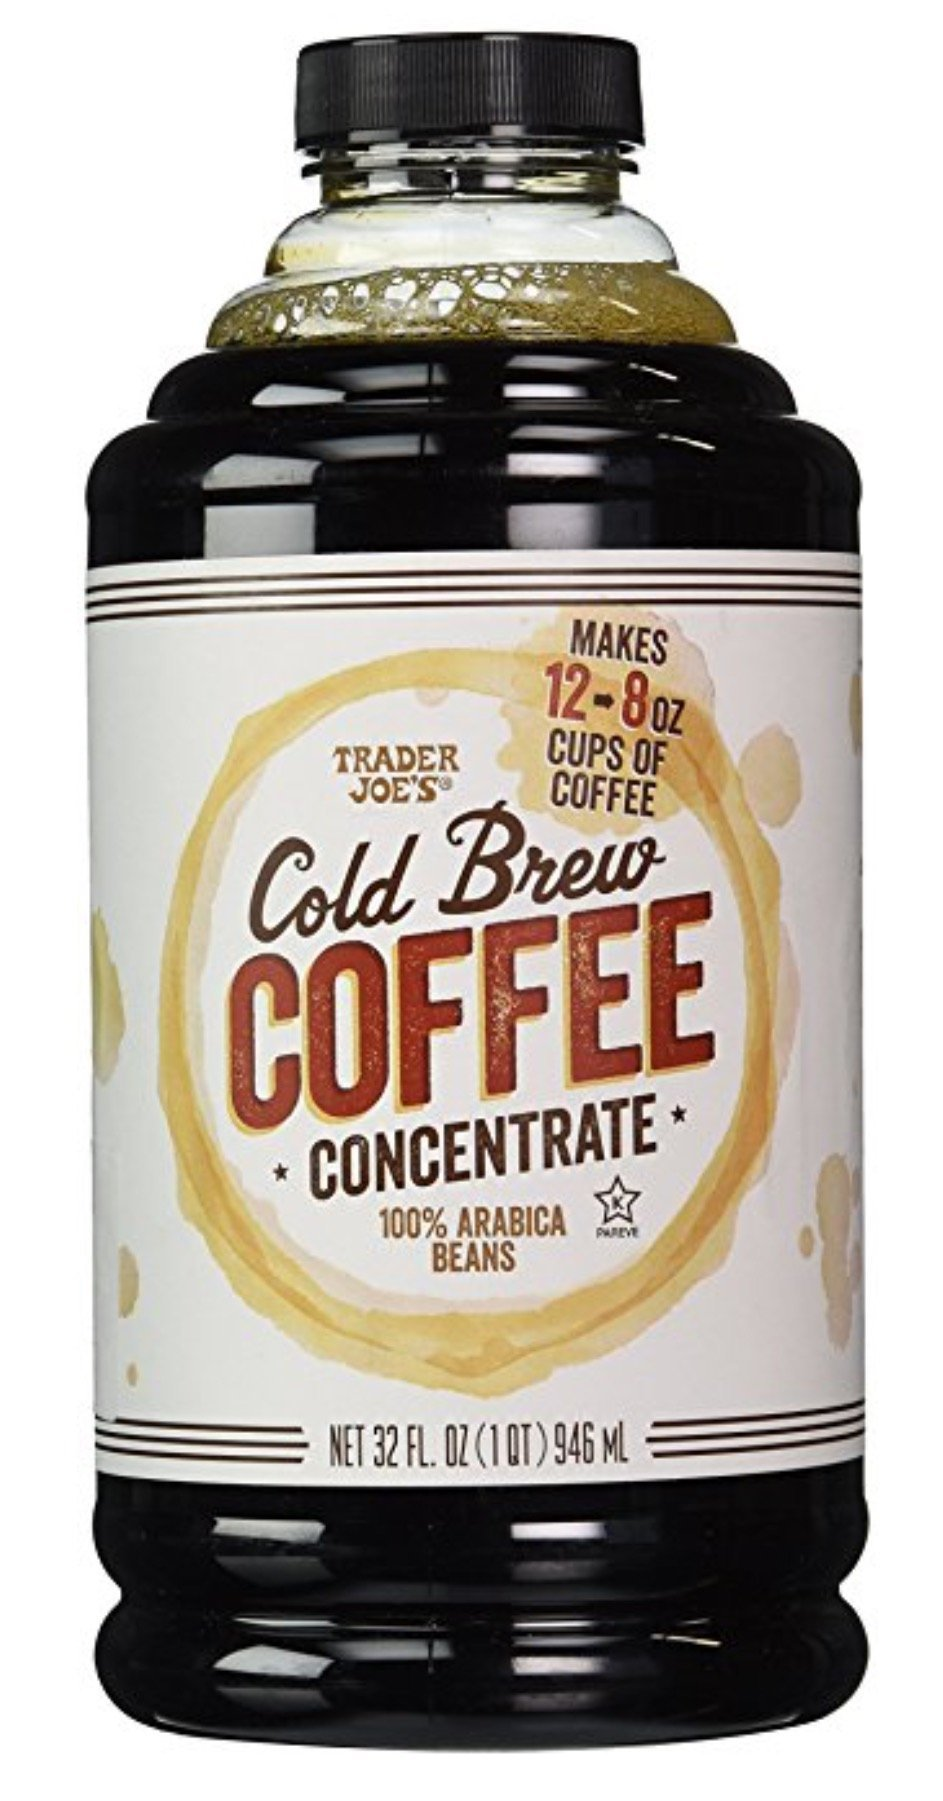 Trader Joe's Cold Brew Coffee Concentrate 100% Arabica Beans 32 fl. oz. (Pack of 2)